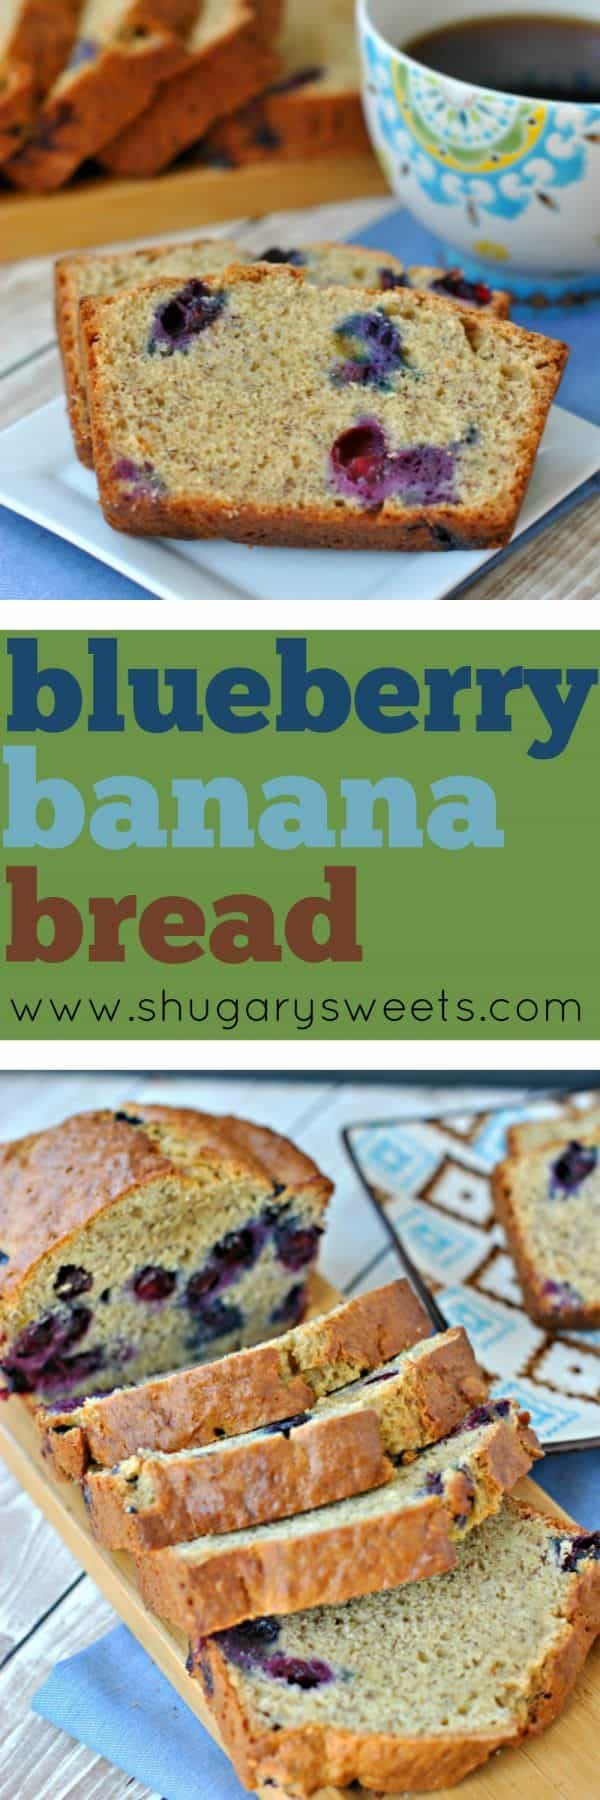 Adding blueberries to Banana bread is just a good idea. One slice of this Blueberry Banana Bread and you'll totally understand. I enjoyed my slice of bread with a hot cup of coffee!